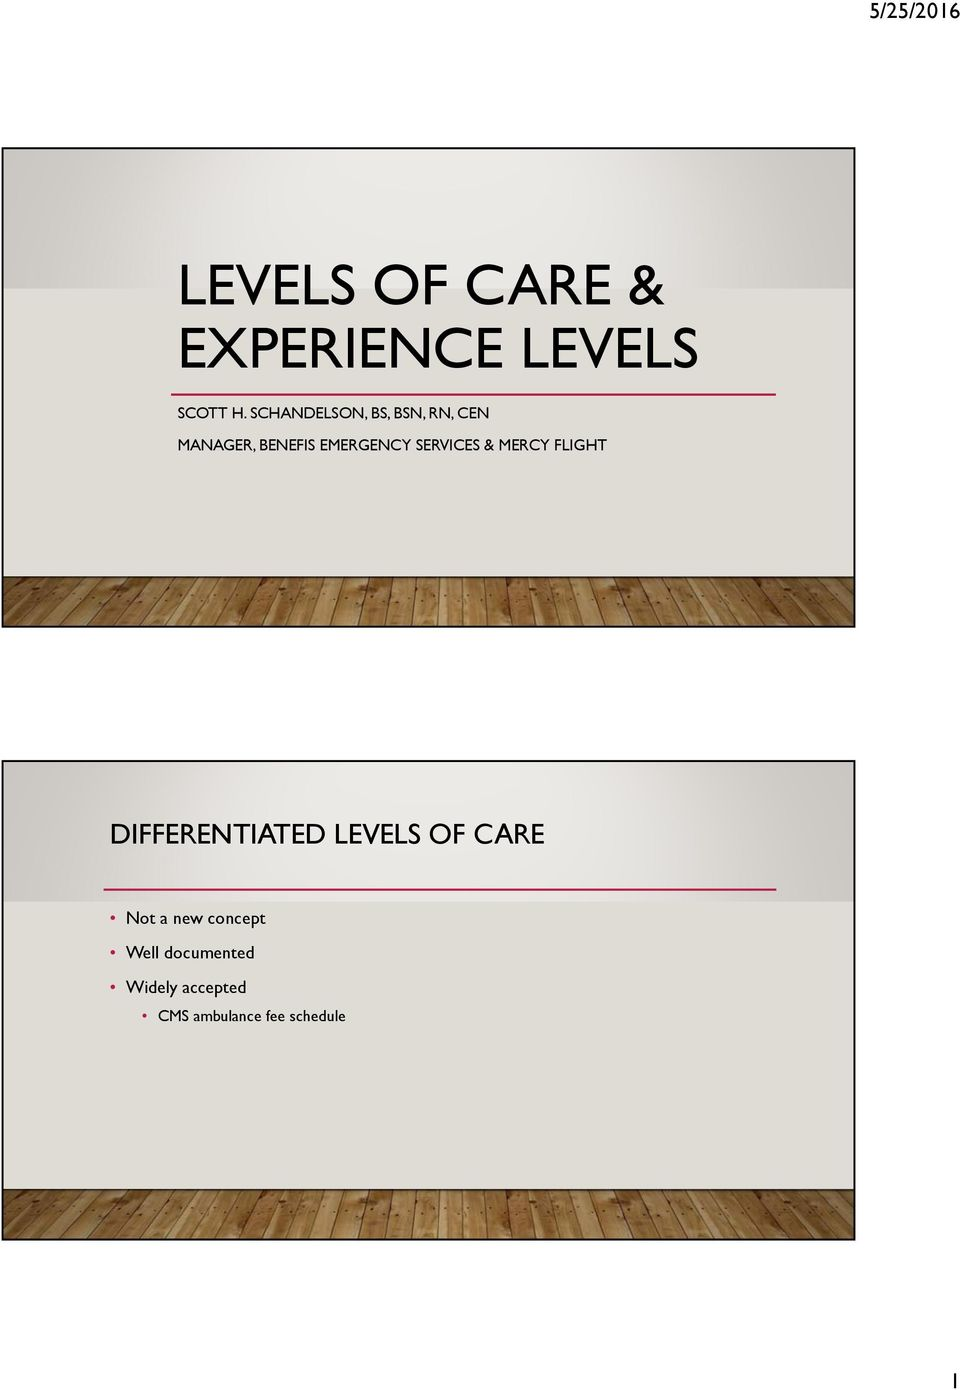 SERVICES & MERCY FLIGHT DIFFERENTIATED LEVELS OF CARE Not